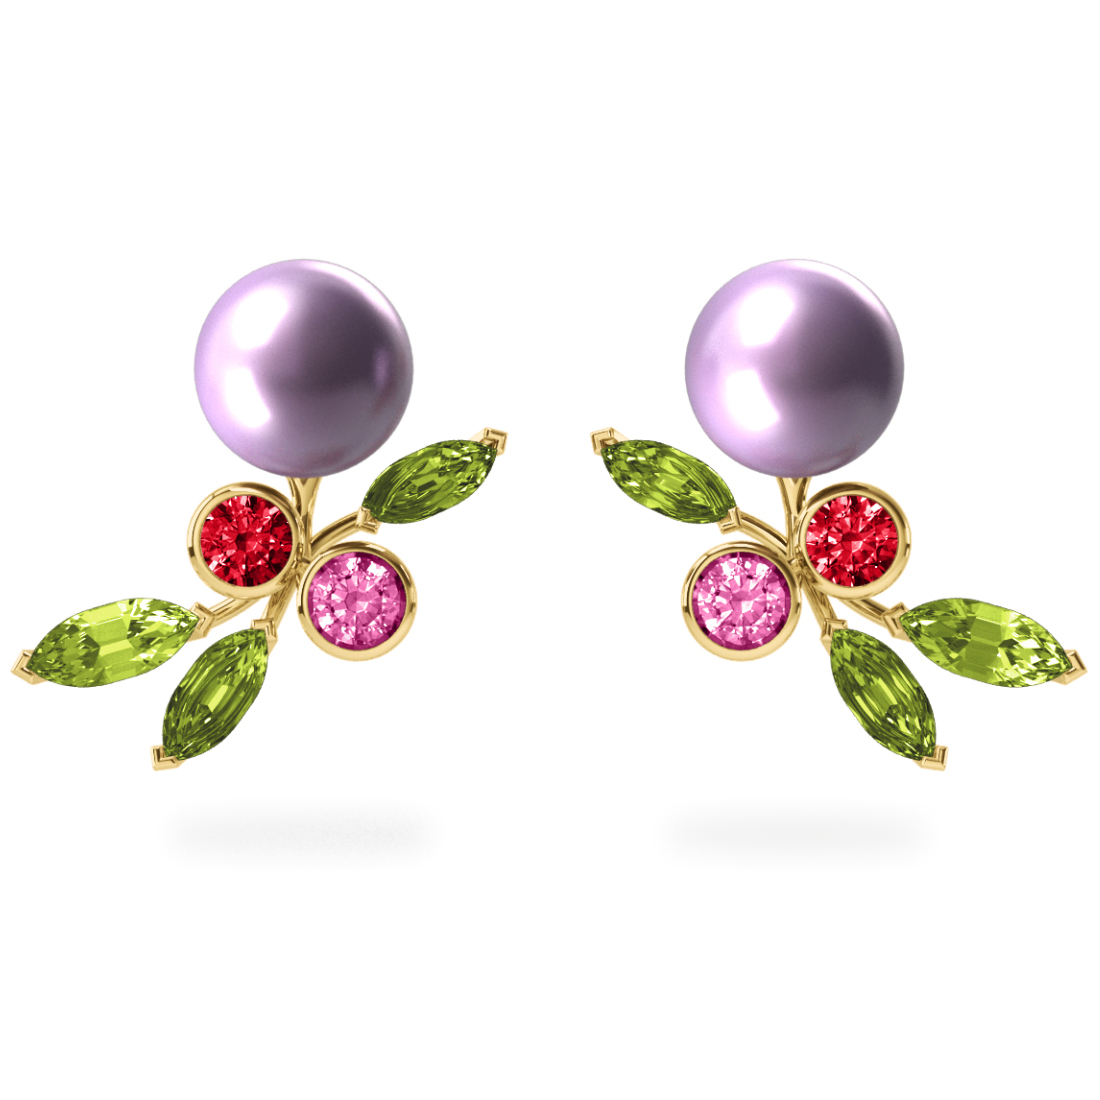 Boucles d'oreilles My Angel Mauve - Saphirs, diamants, péridots & perles d'eau douce <br /> Or jaune 18 carats